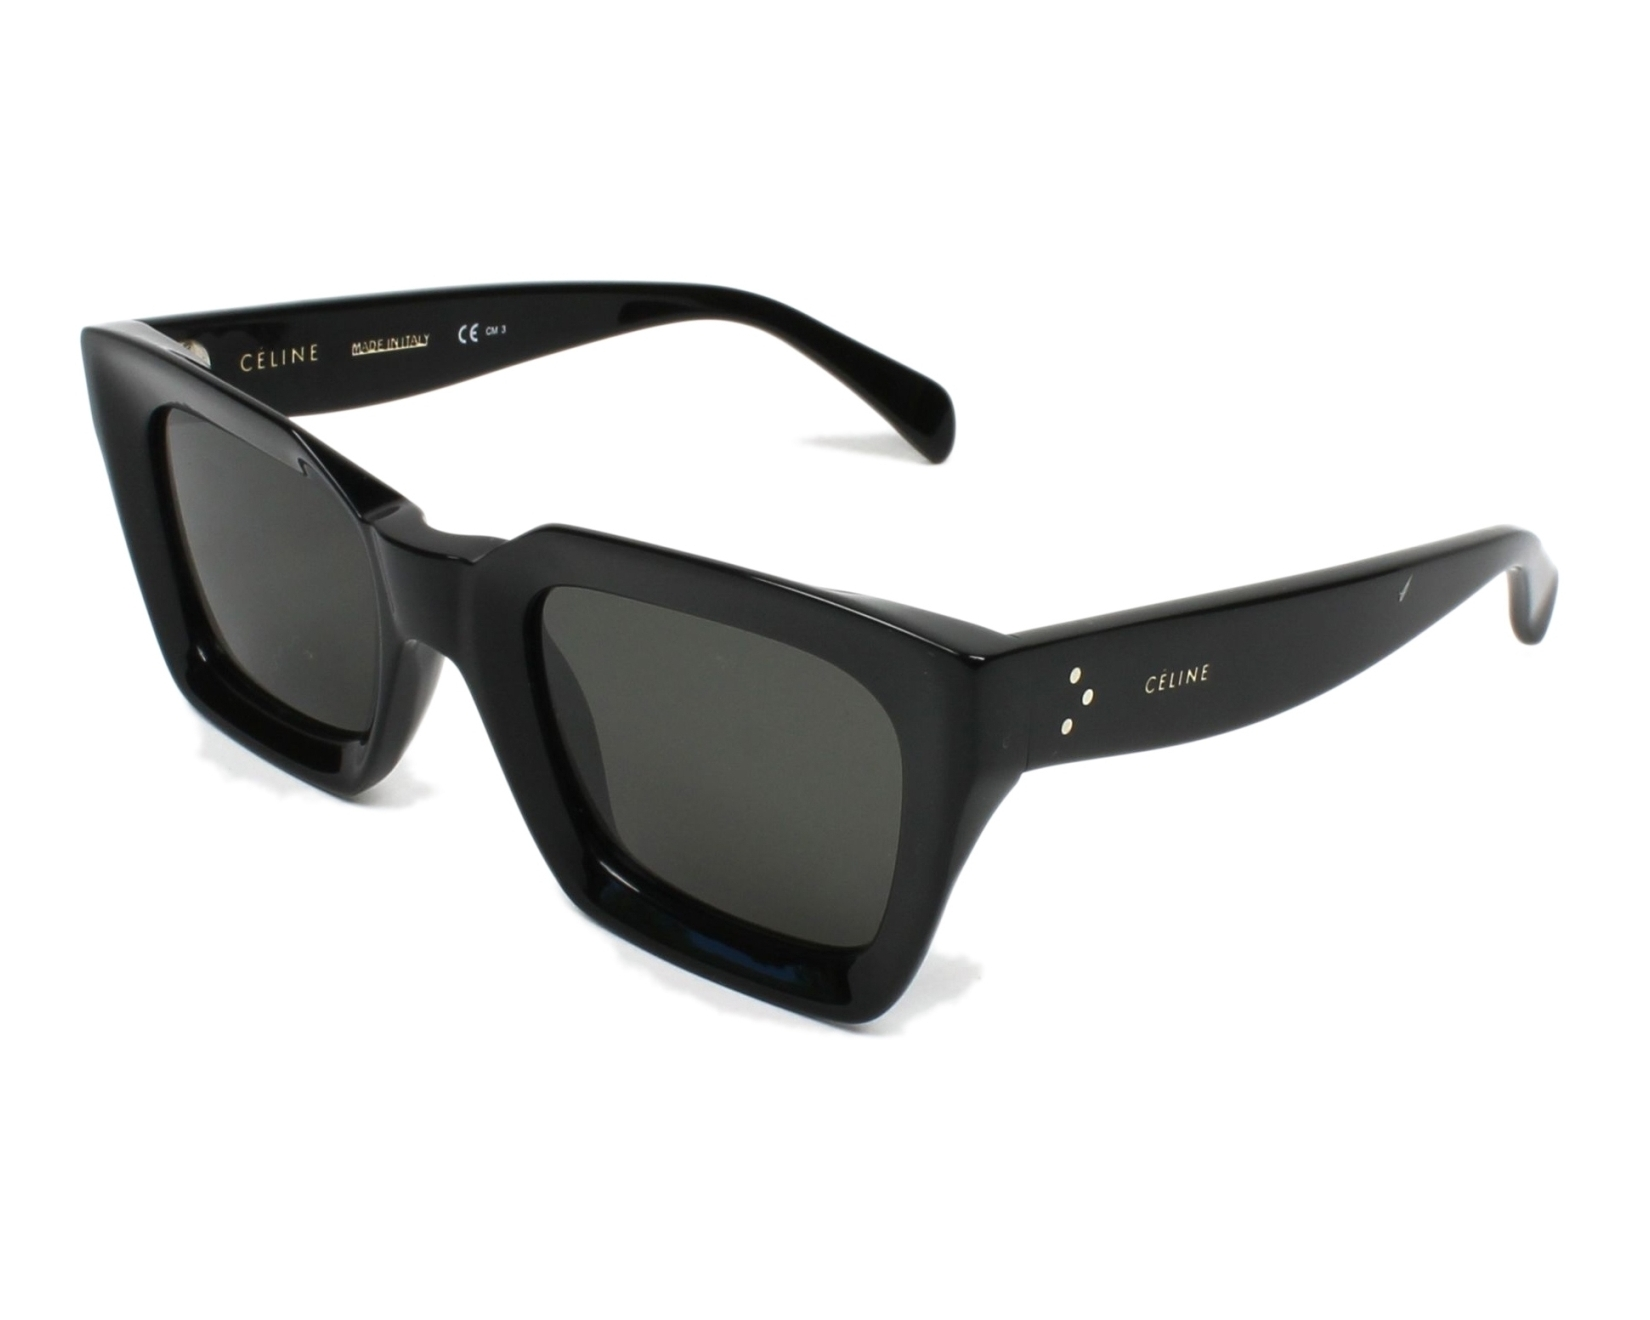 C 233 Line Sunglasses Cl 41450 807 70 Black Visio Net Com